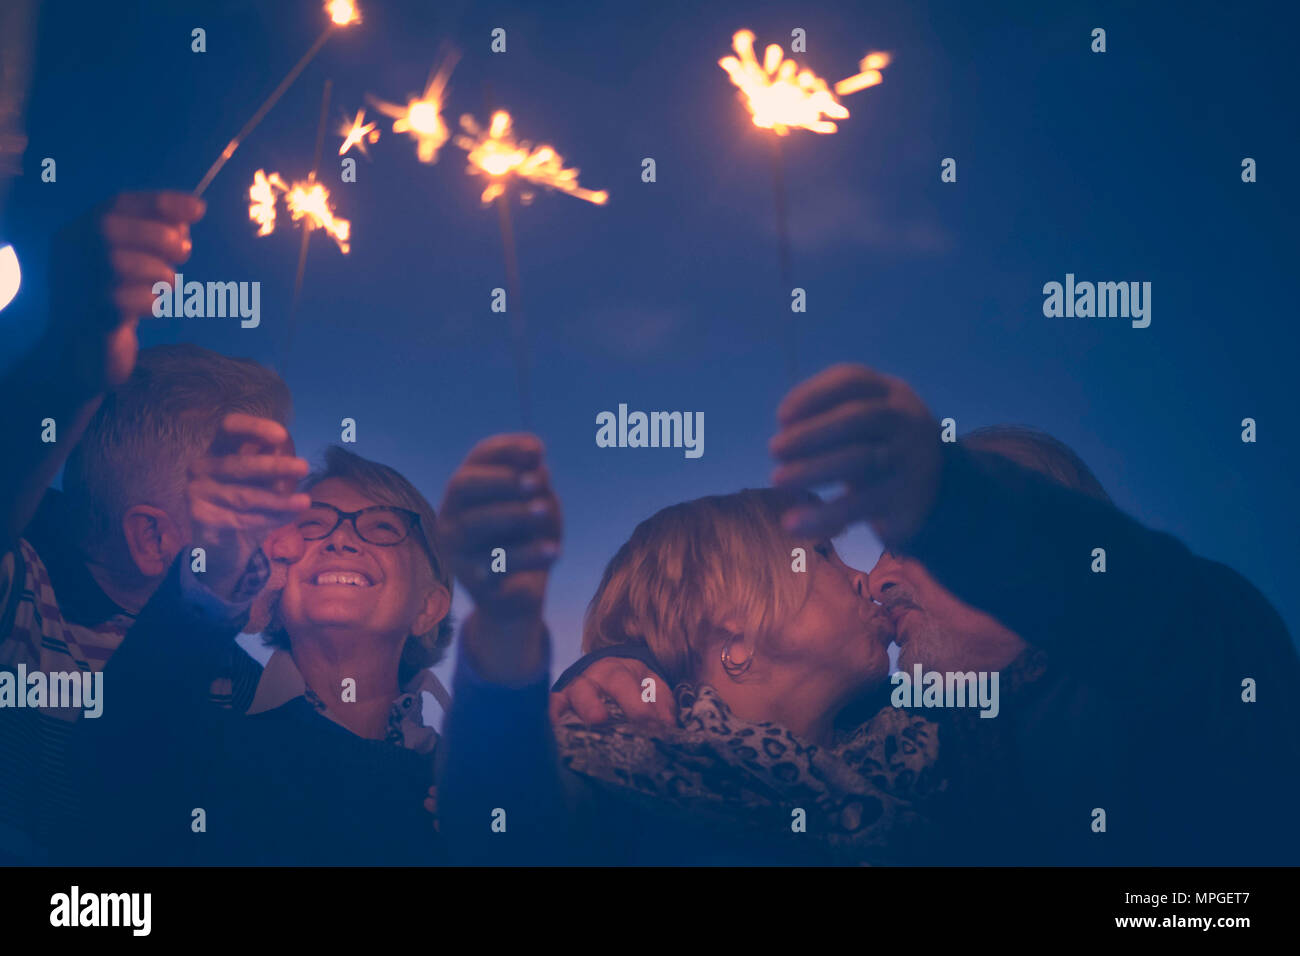 celebration party for holiday night or new year eve 2019. group of aged men and women people with fire sparks. everybody kissing and having a lot of f - Stock Image